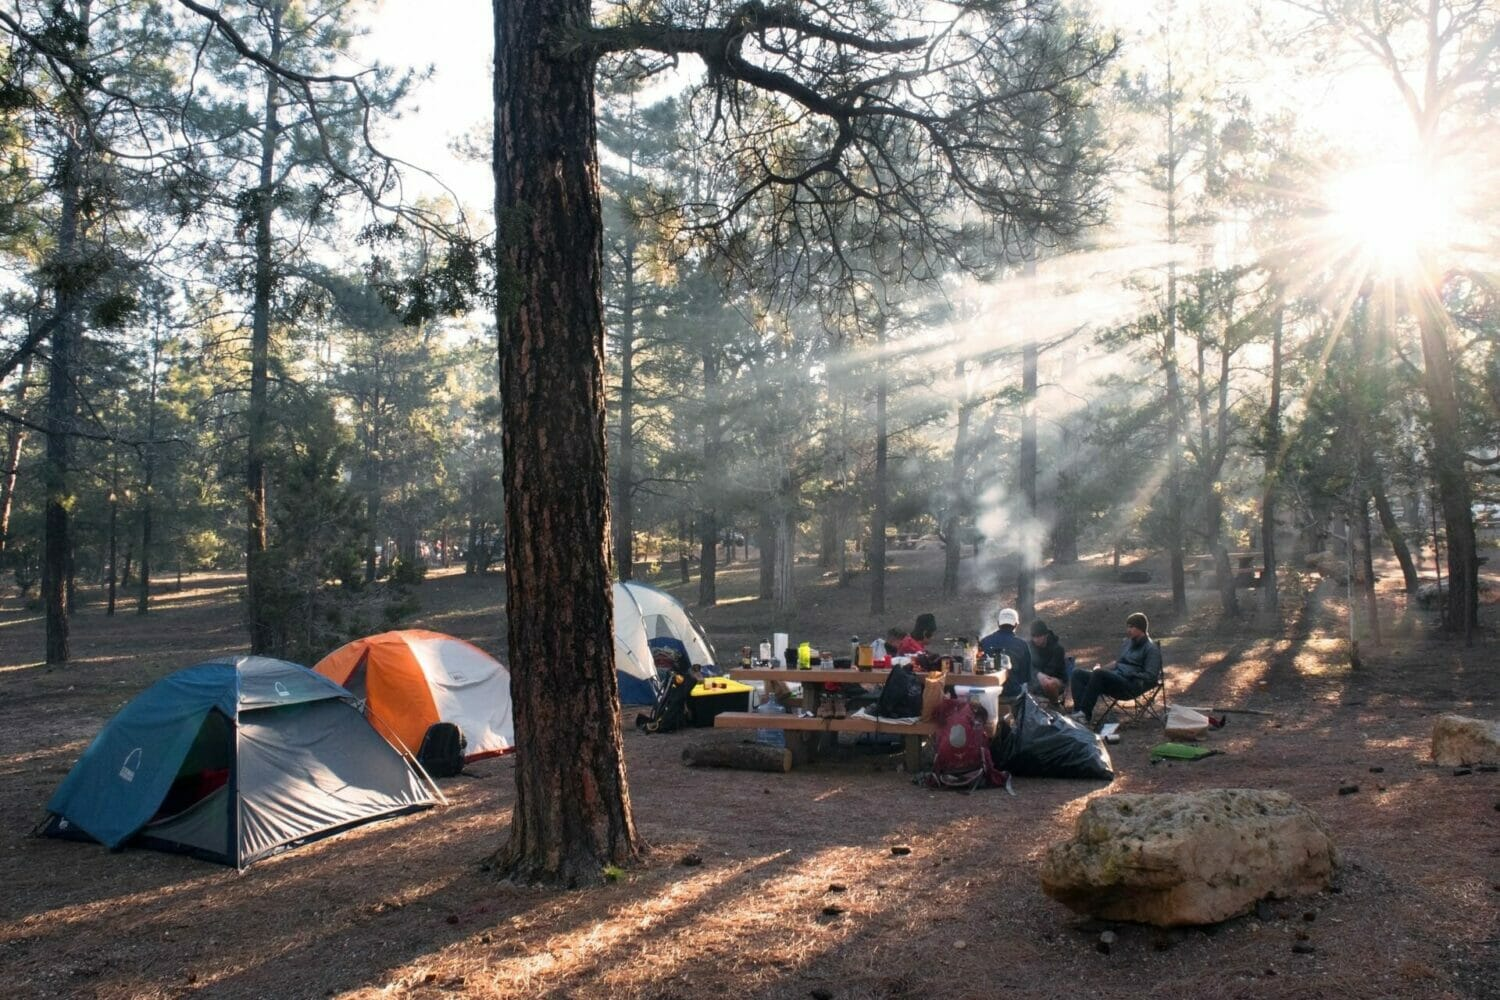 If you and your family like to camp, these family camping splurges will make your adventures oh-so-much-nicer.